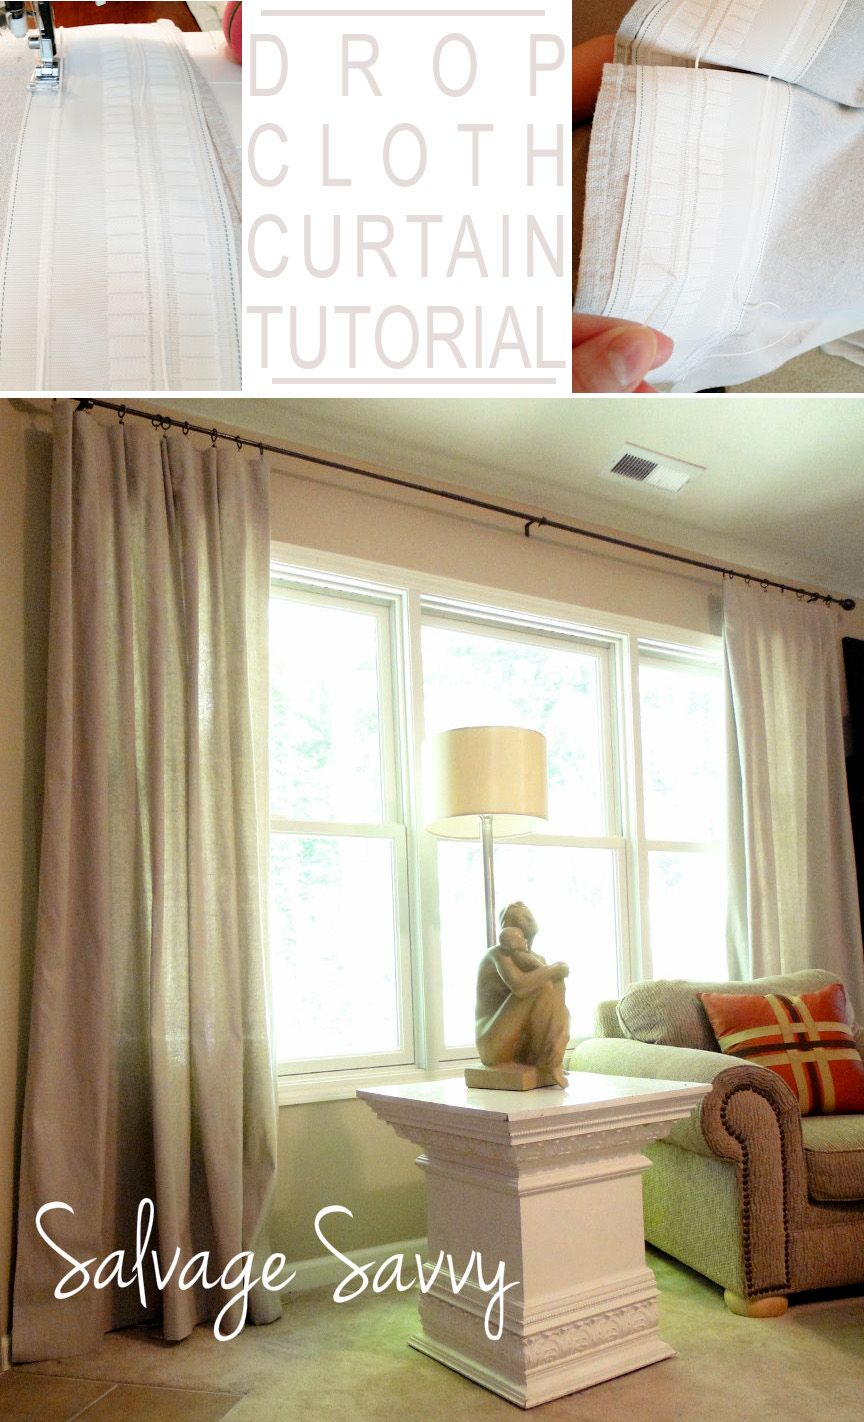 Over the sink kitchen window treatments  drop cloth curtains tutoriali am doing this in several rooms ium